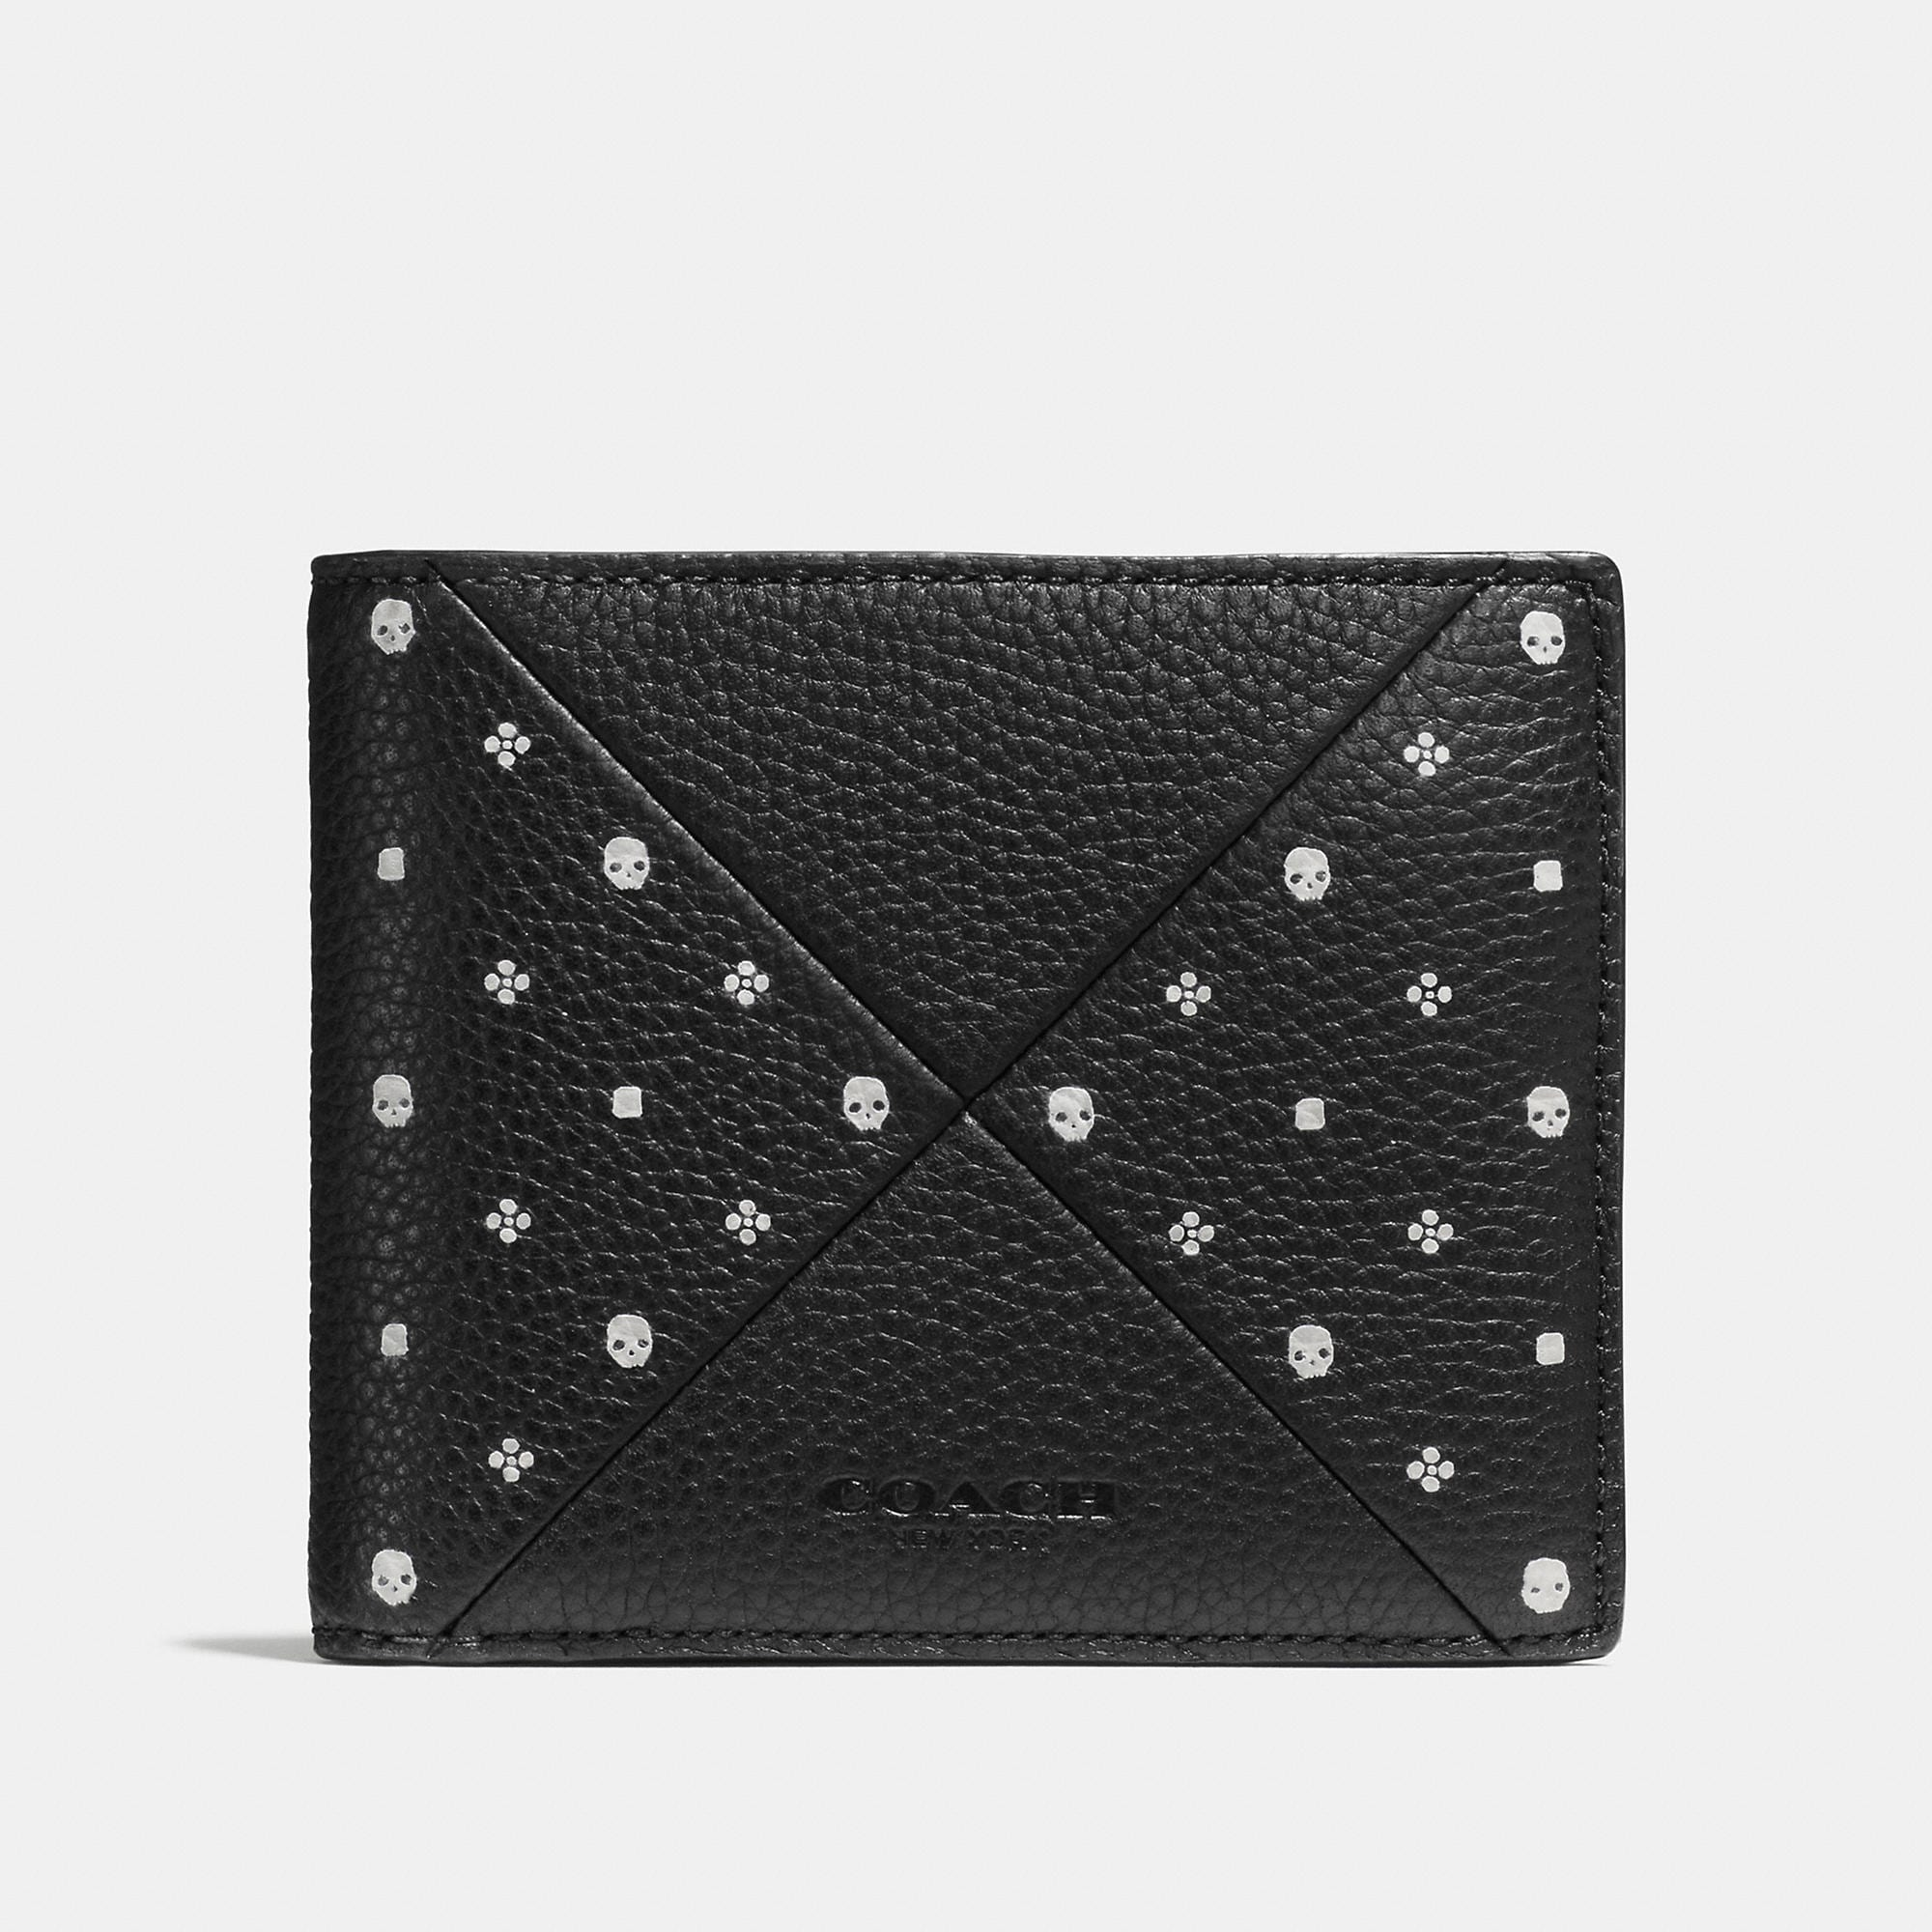 Coach 3-in-1 Wallet In Bandana Patchwork Leather